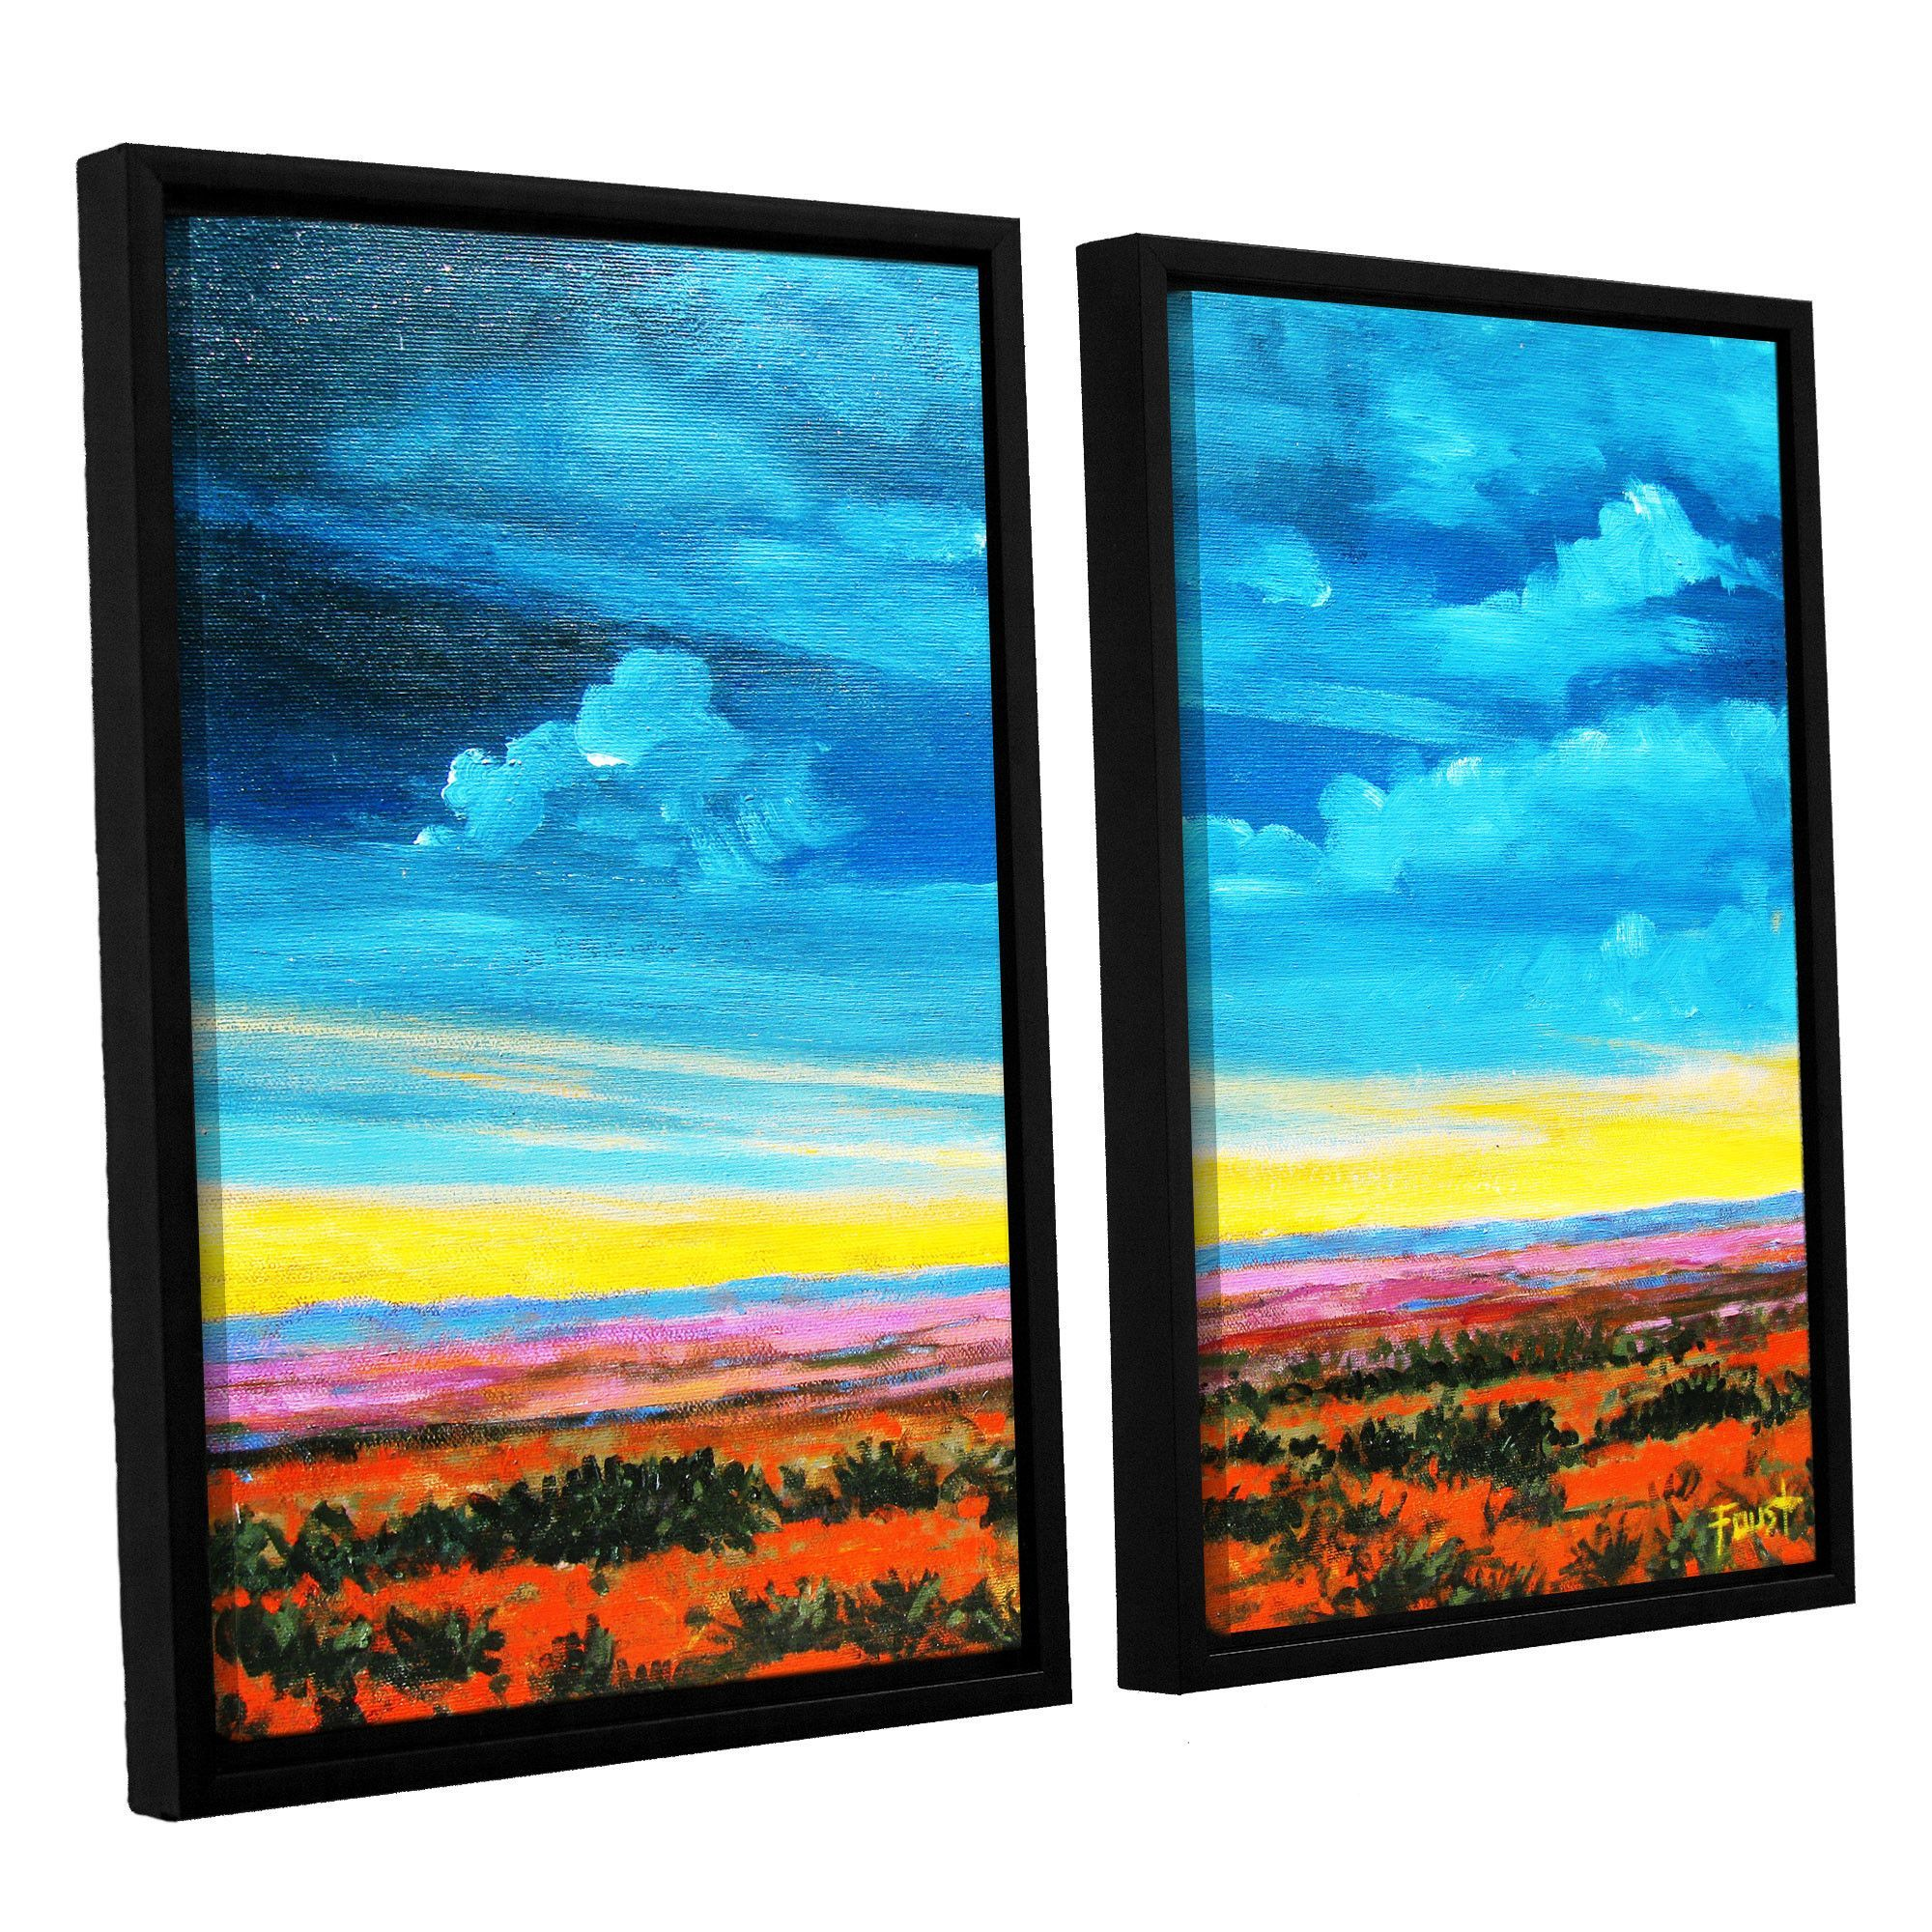 Riders On The Storm by Gene Foust 2 Piece Floater Framed Painting Print on Canvas Set